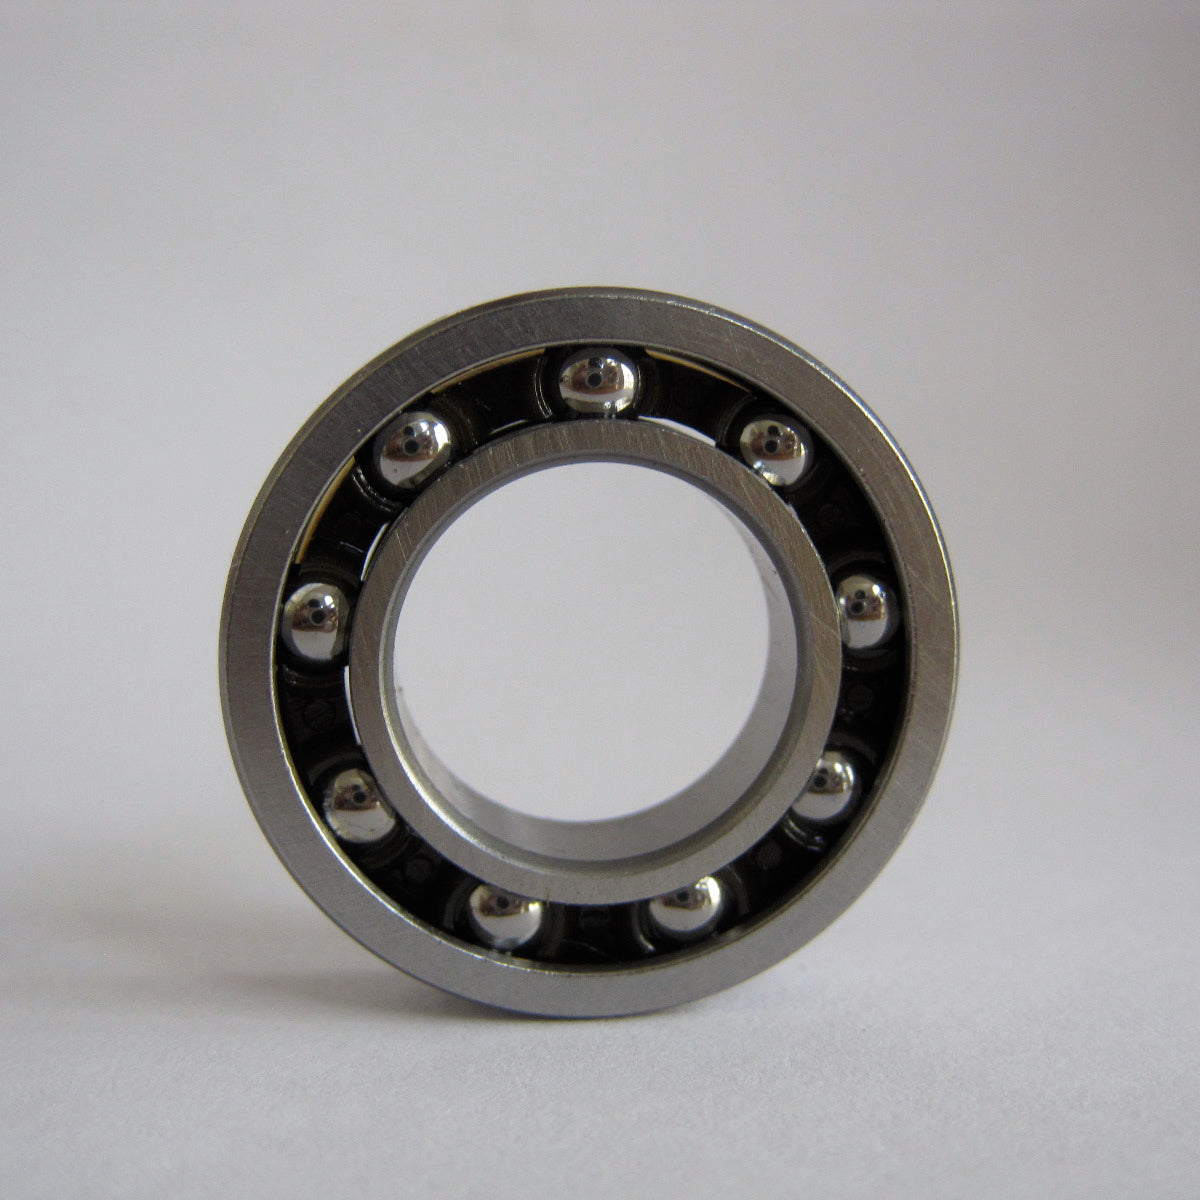 14x25.4x6 Rear Crank Bearing w/offset race